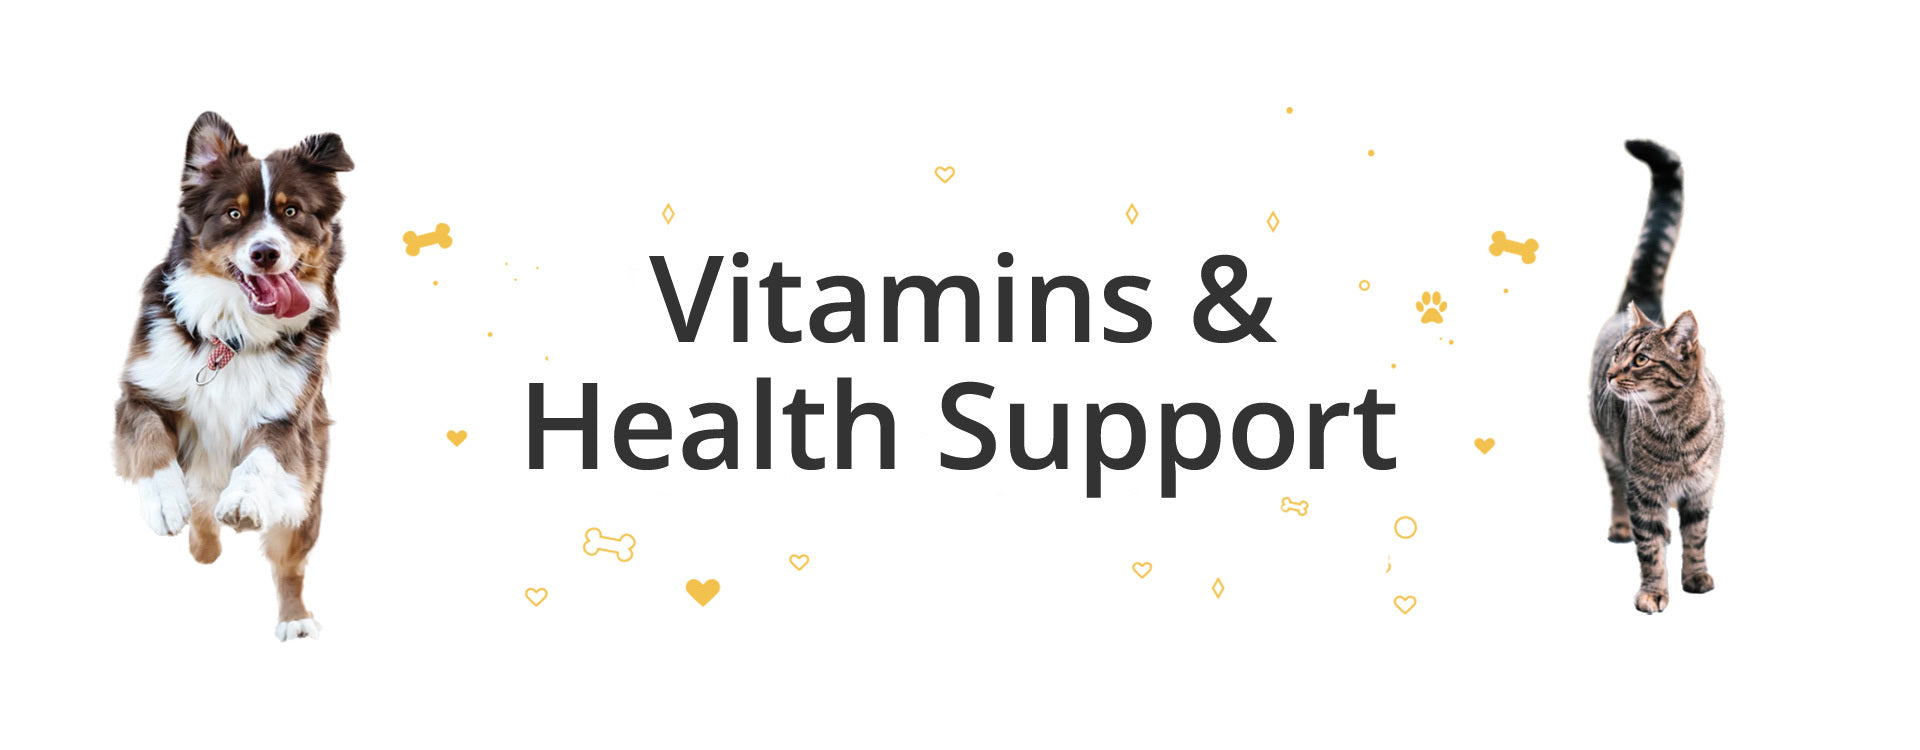 Vitamin & Health Support